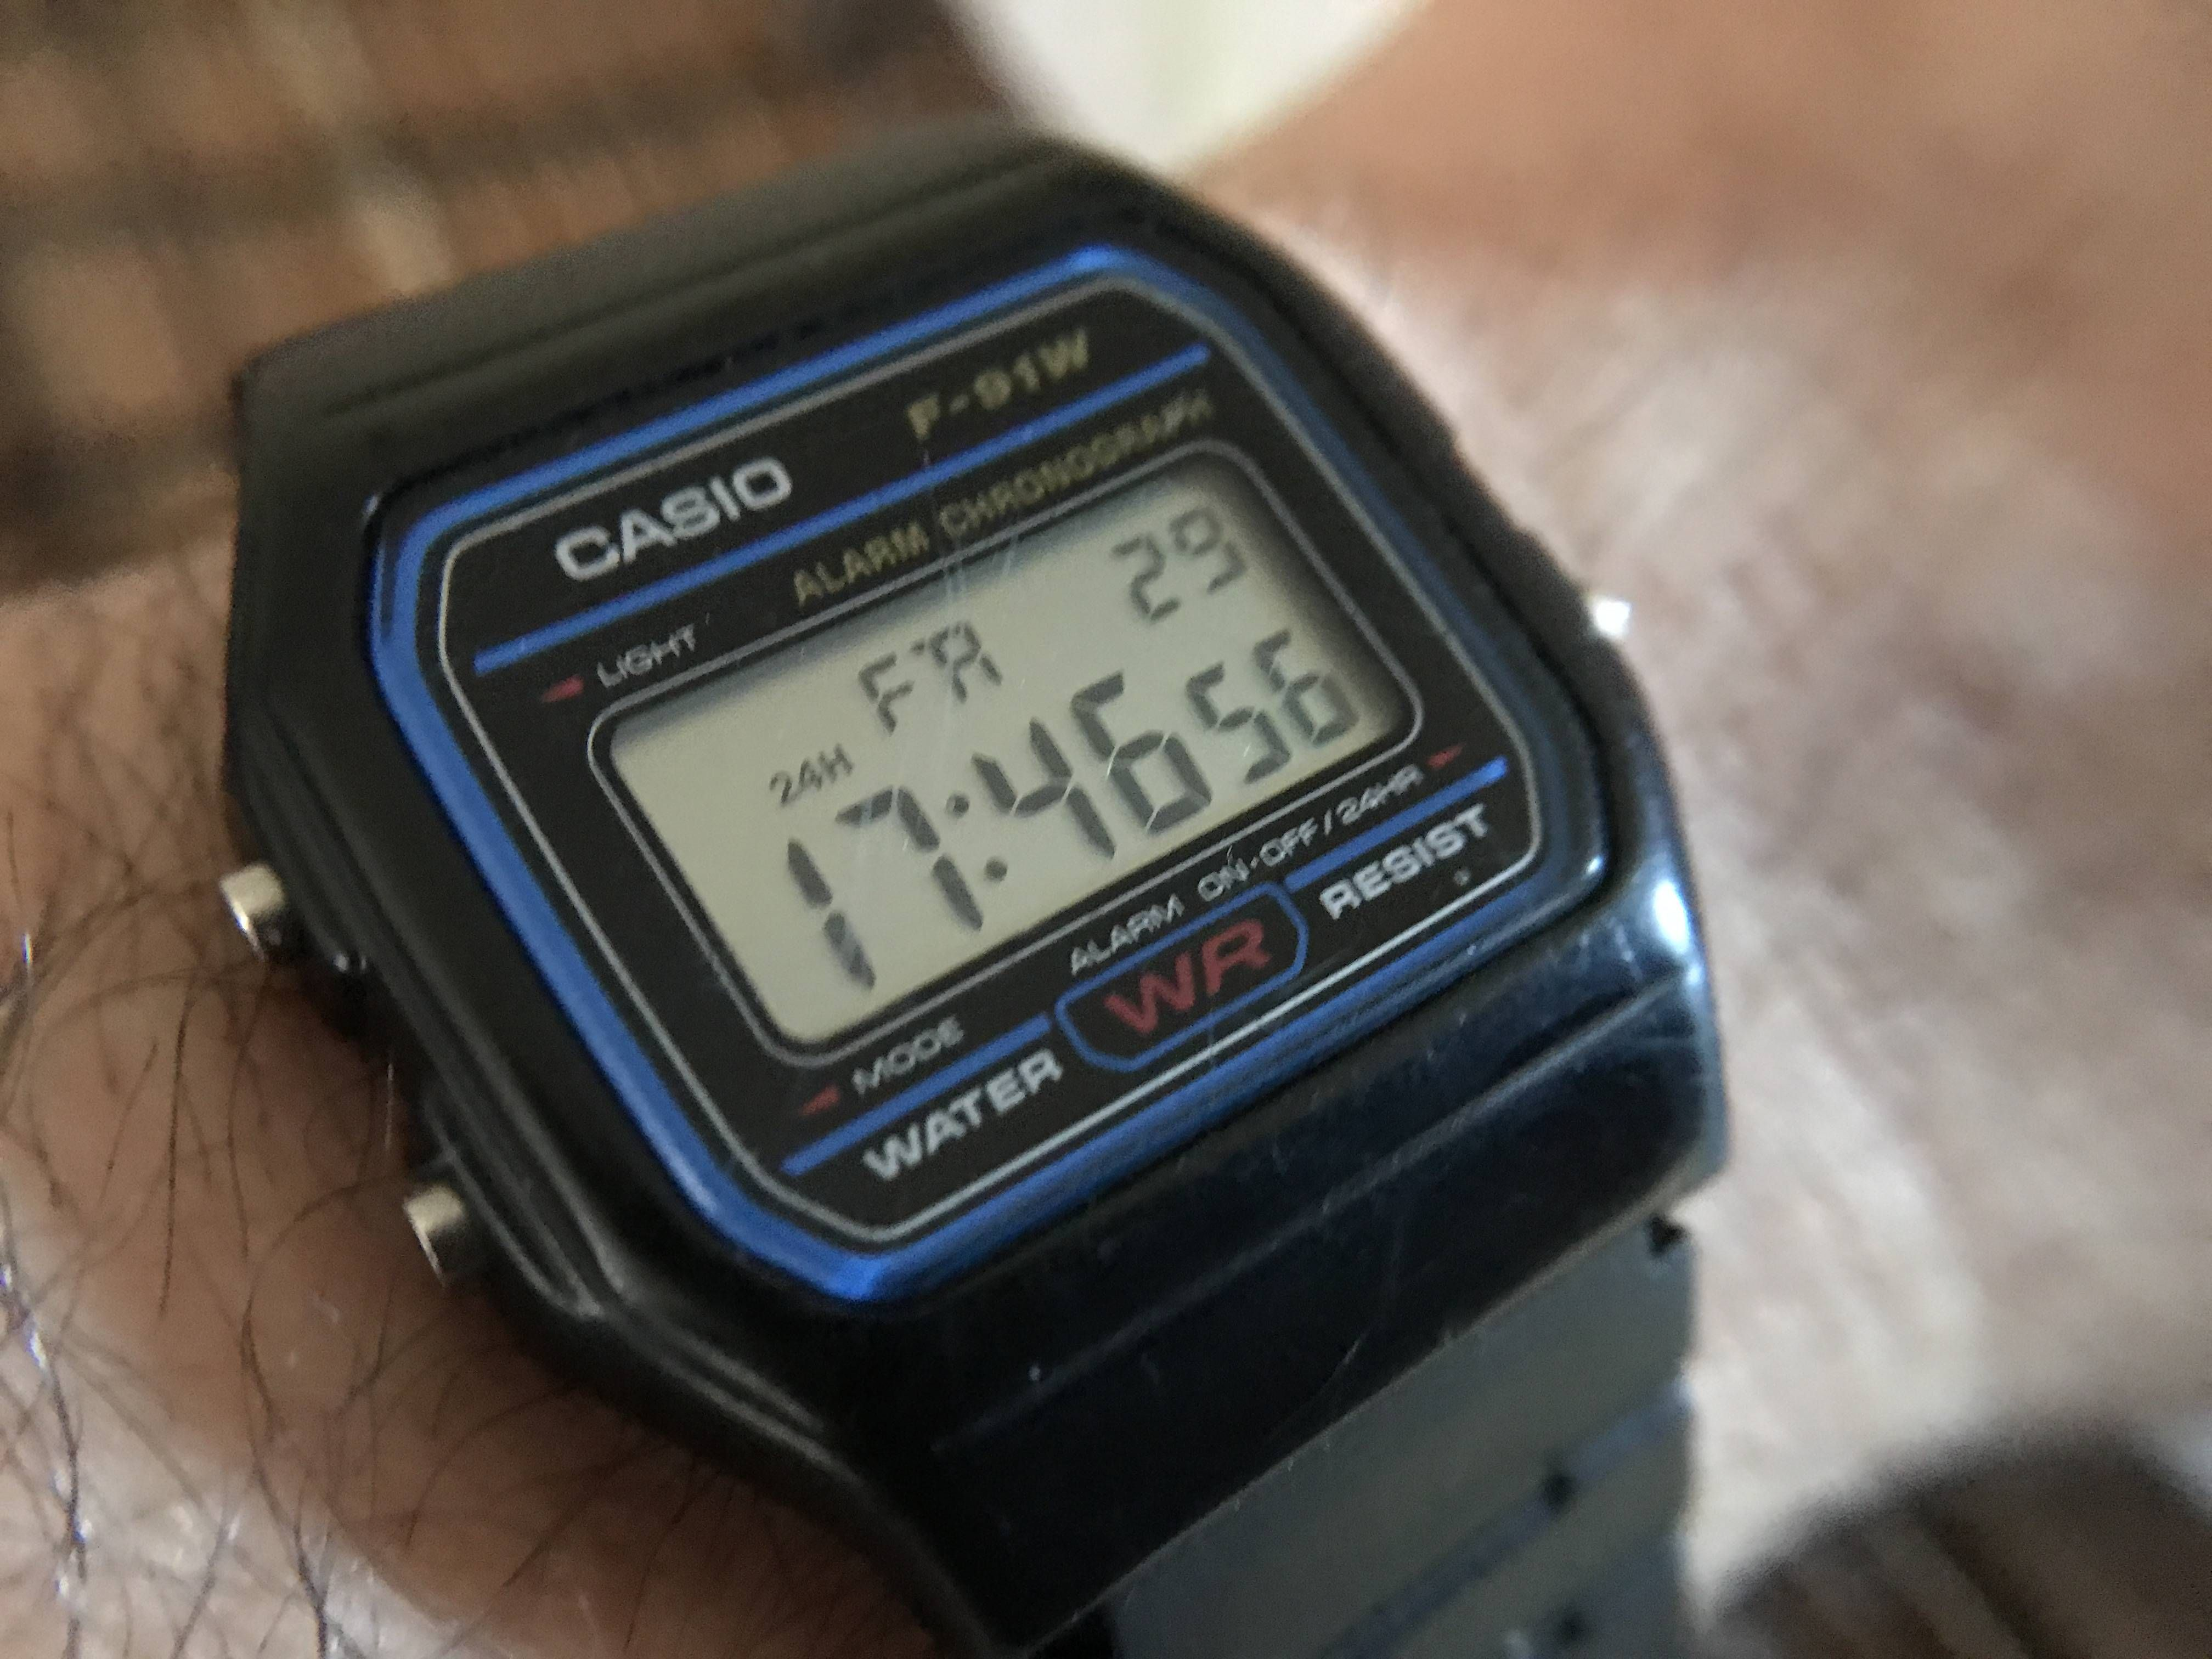 [Casio] My F-91W is my ten year old beater for running. Strap broke - replacement cost nearly as much as the watch! http://ift.tt/2yyzdjY